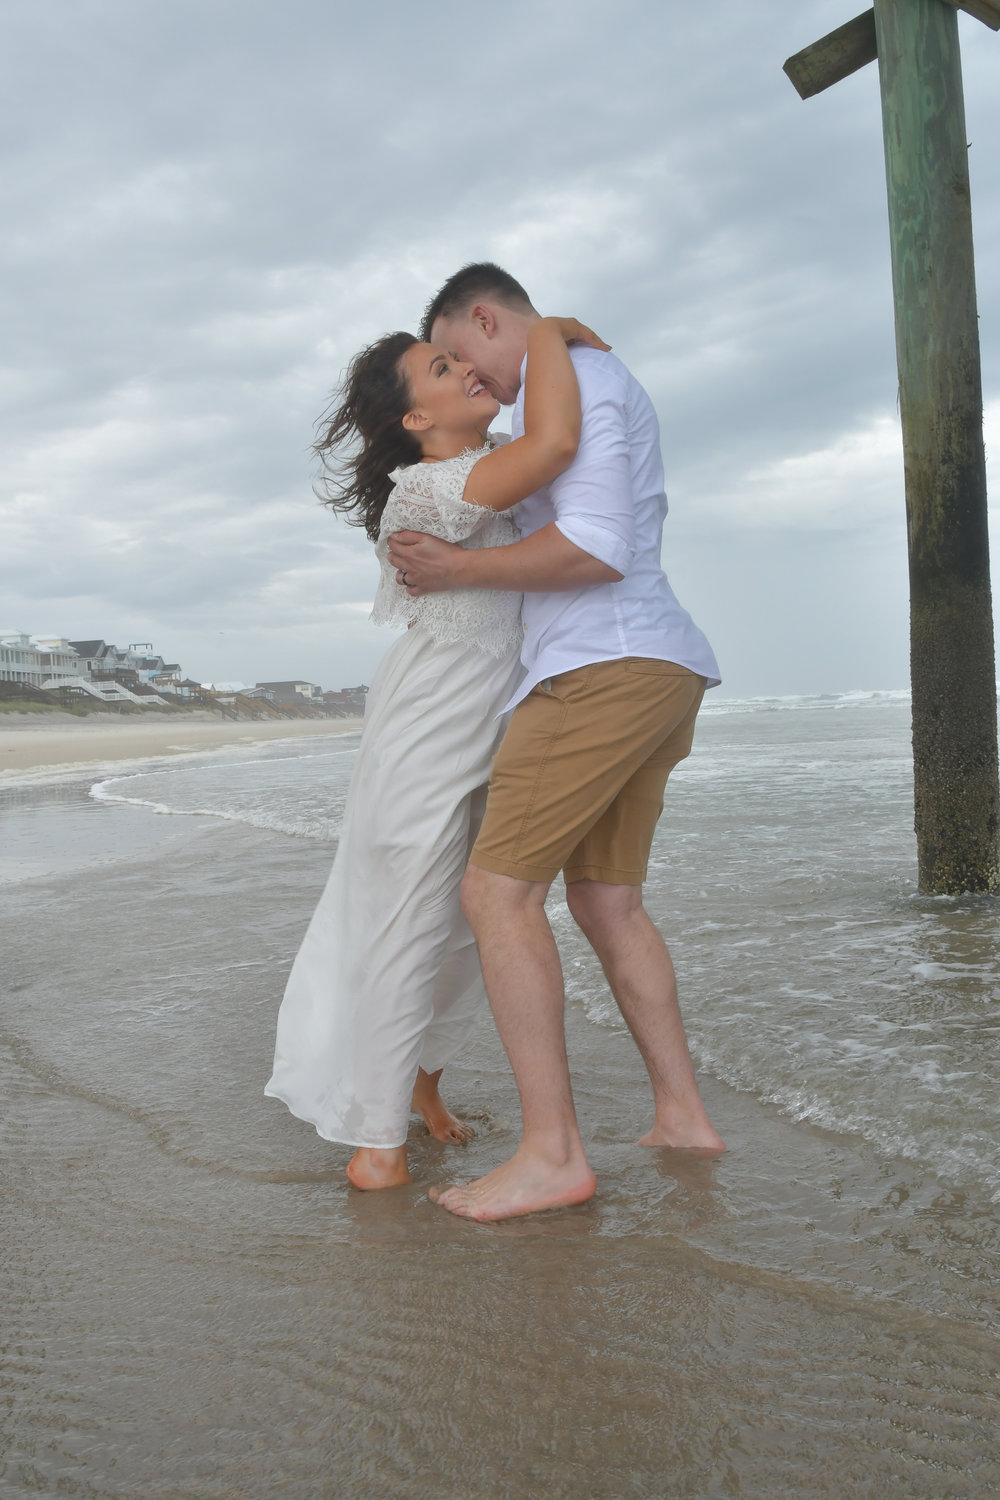 Passion - Despite the wind and the light rain, bride and groom share a moment near the Surf City Pier in Surf City, Topsail Island, NC. Billy Beach Photography.